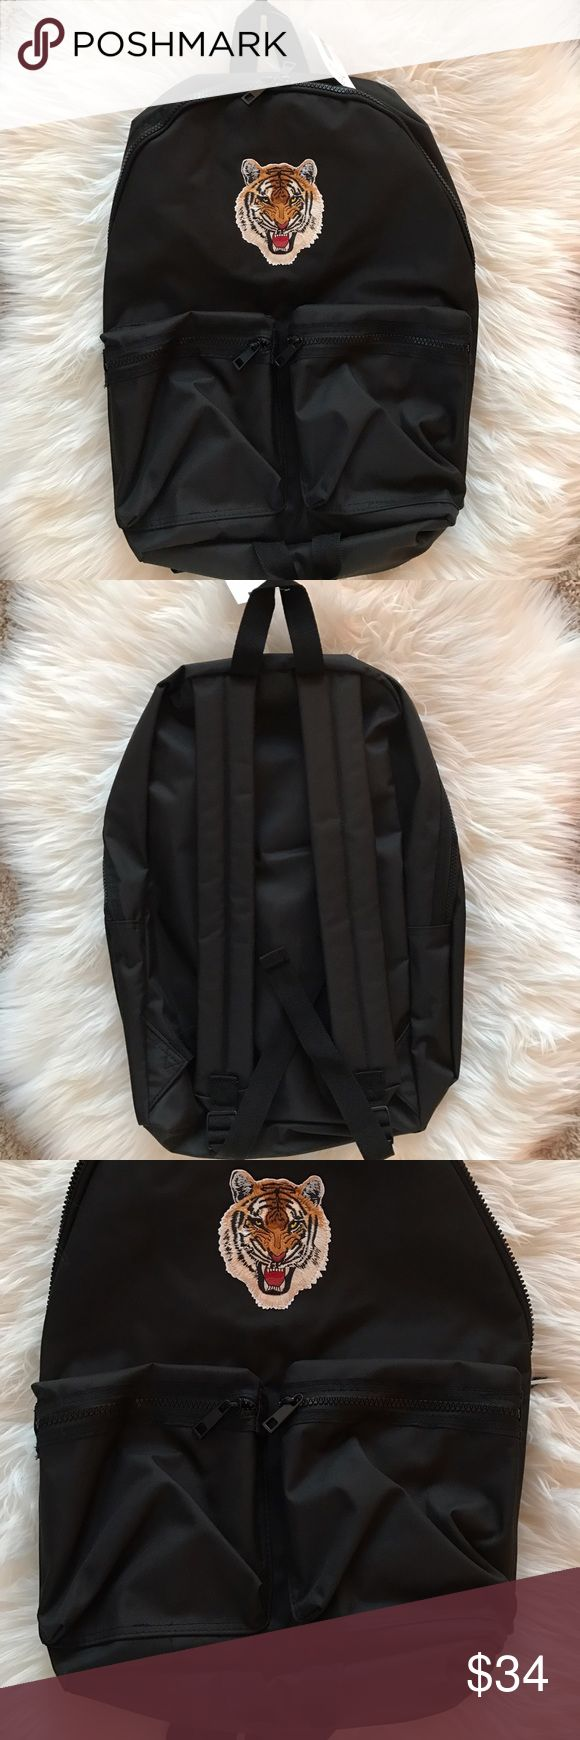 *NWT* Topman Backpack Stitched tiger graphic backpack from Topman. Brand new with tags! Topman Bags Backpacks